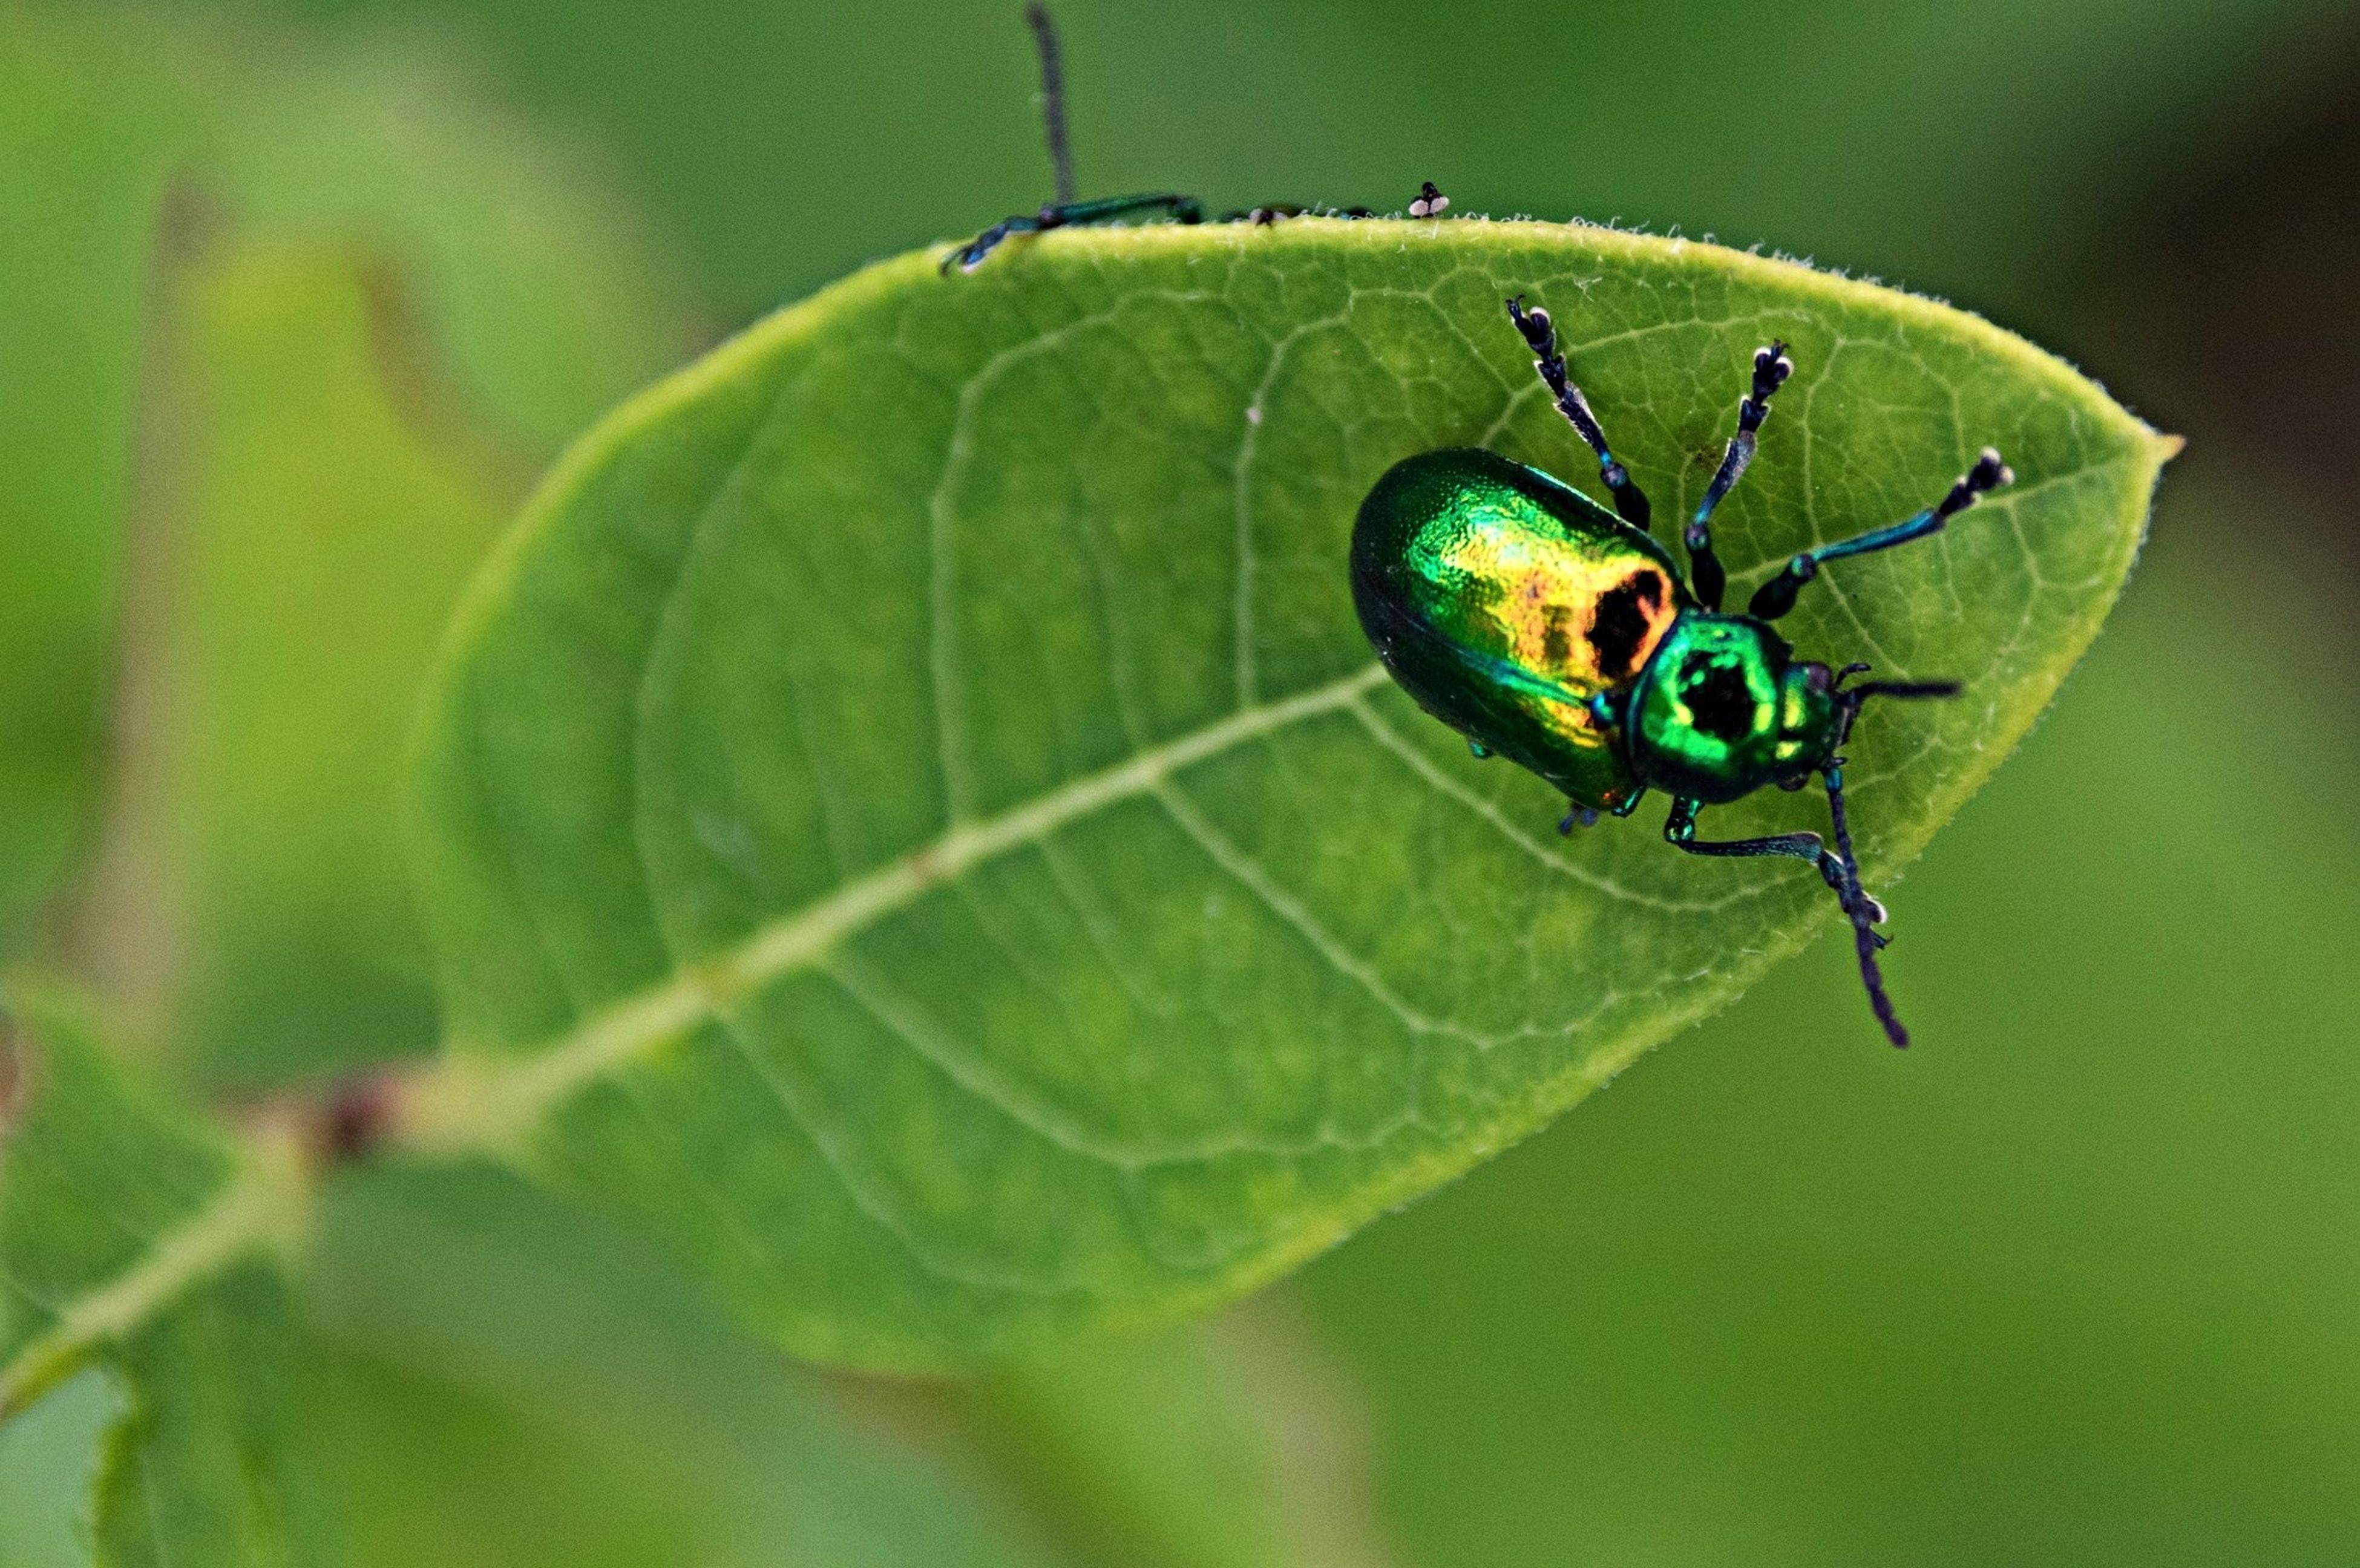 animal themes, one animal, animals in the wild, insect, wildlife, close-up, green color, focus on foreground, spider, leaf, zoology, full length, selective focus, nature, day, no people, outdoors, animal markings, animal antenna, natural pattern